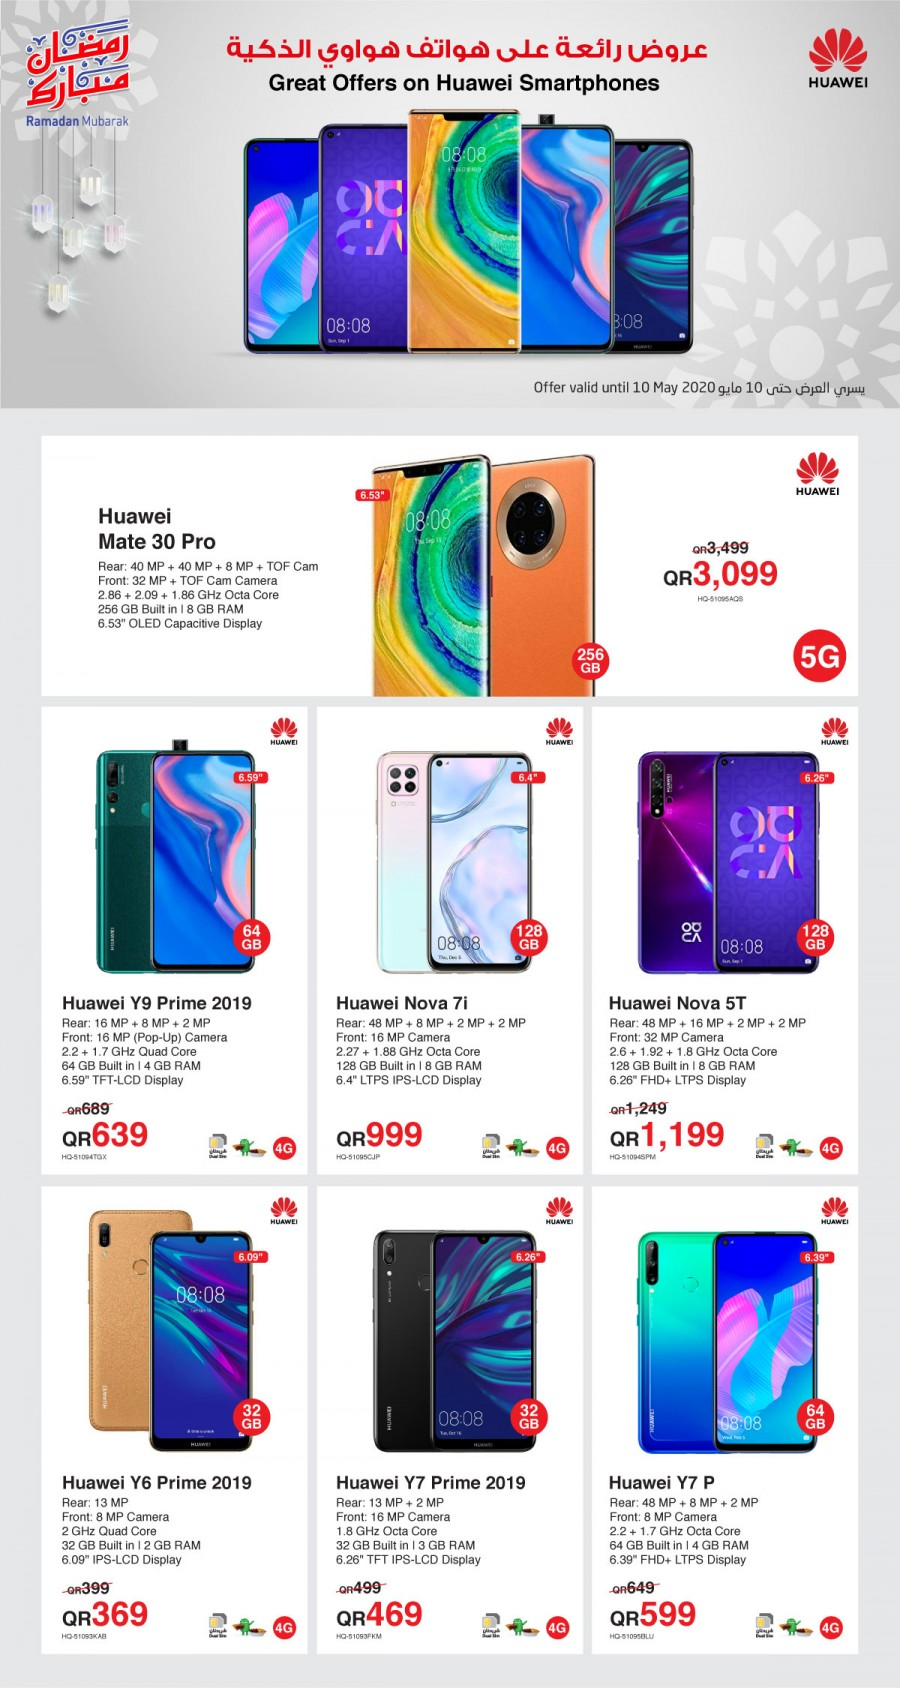 Huawei Smartphones Great Offers